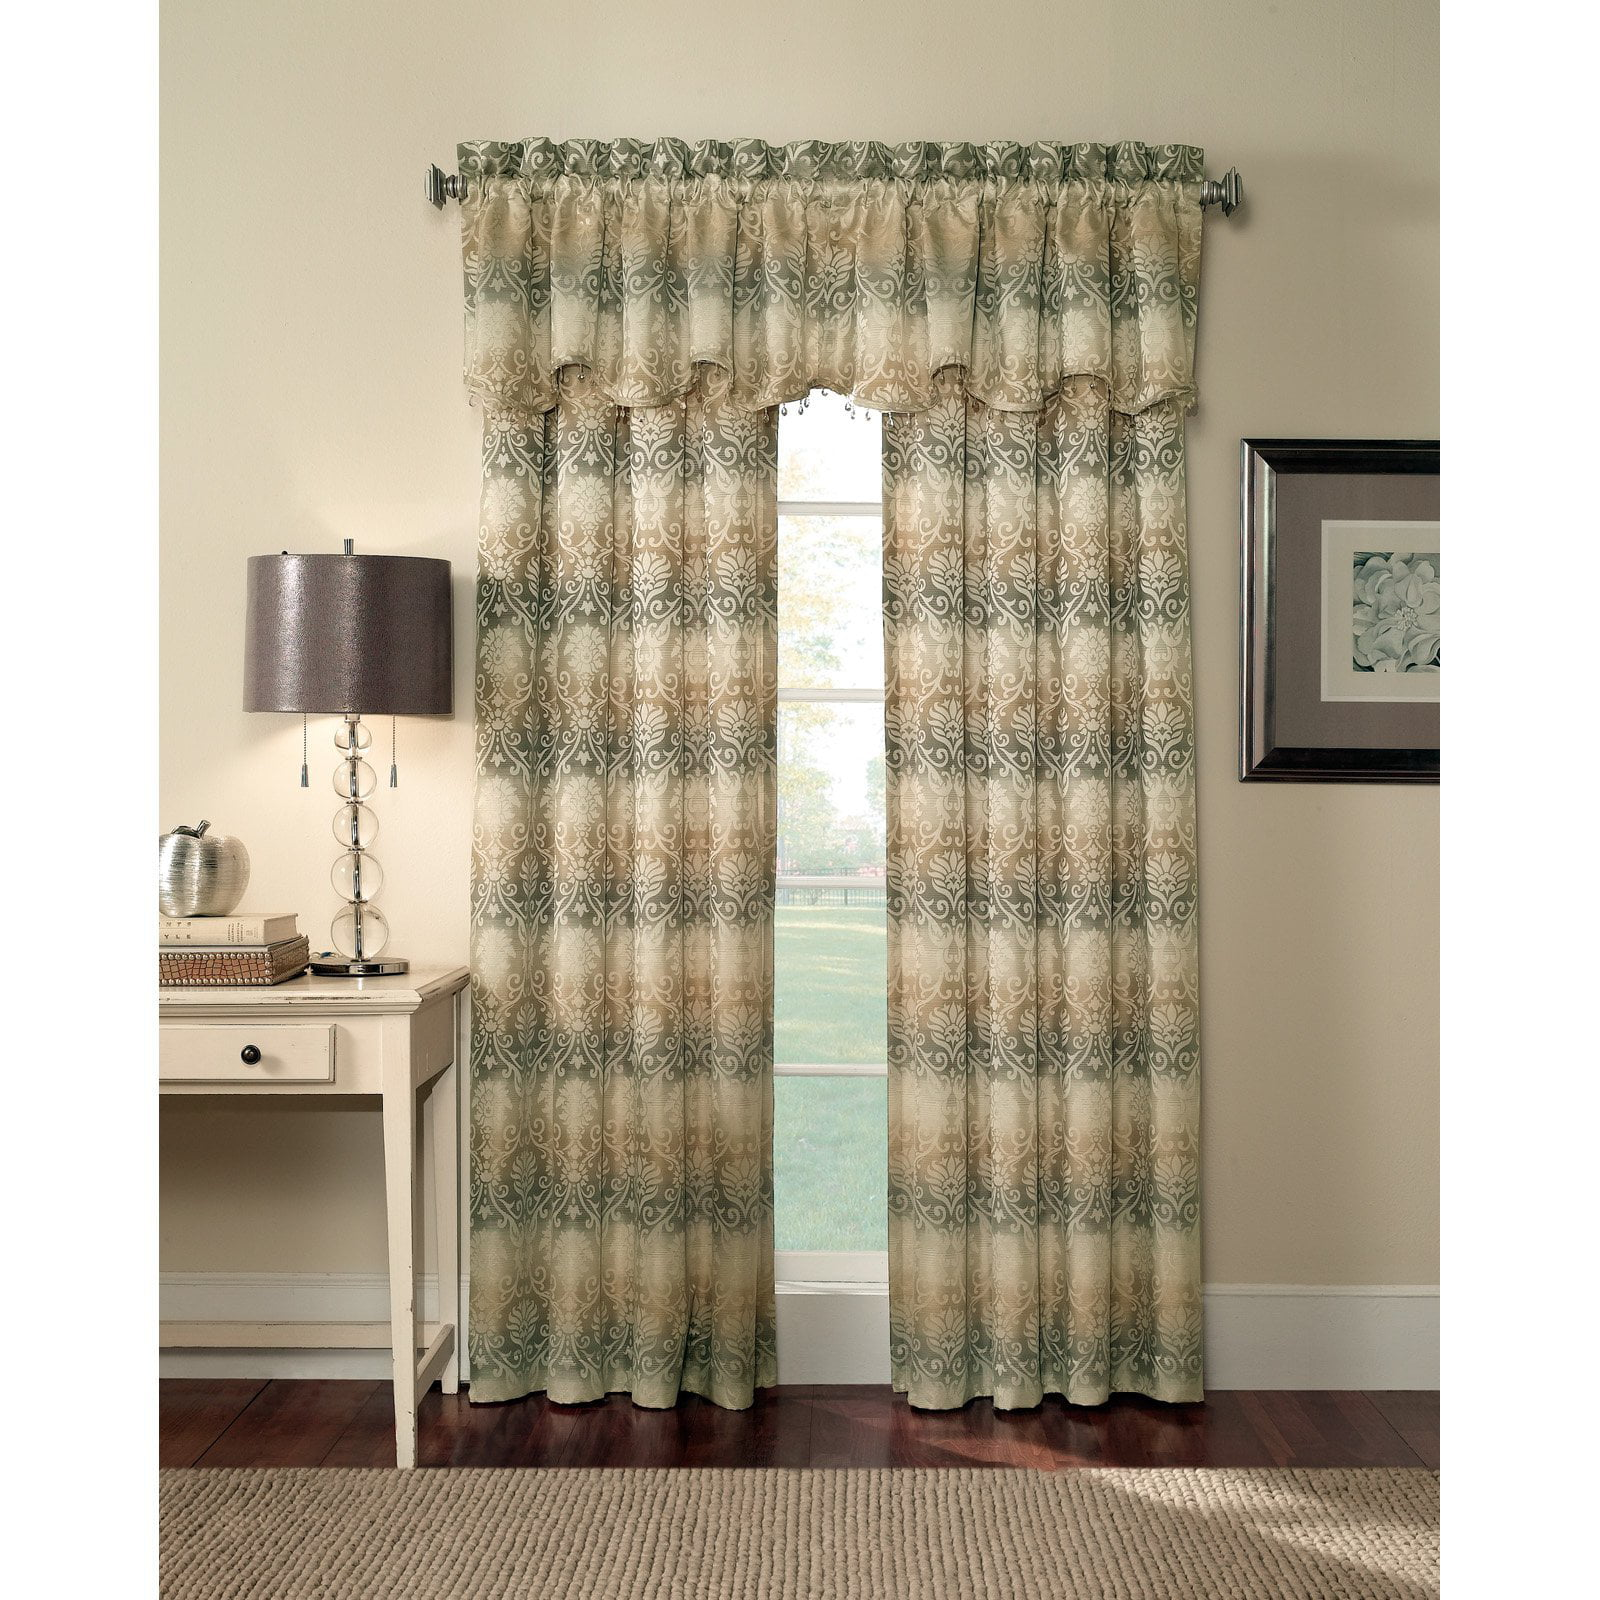 Faux Suede Room Darkening Extra Wide 108 X 84 In Grommet Curtain Panel Pair